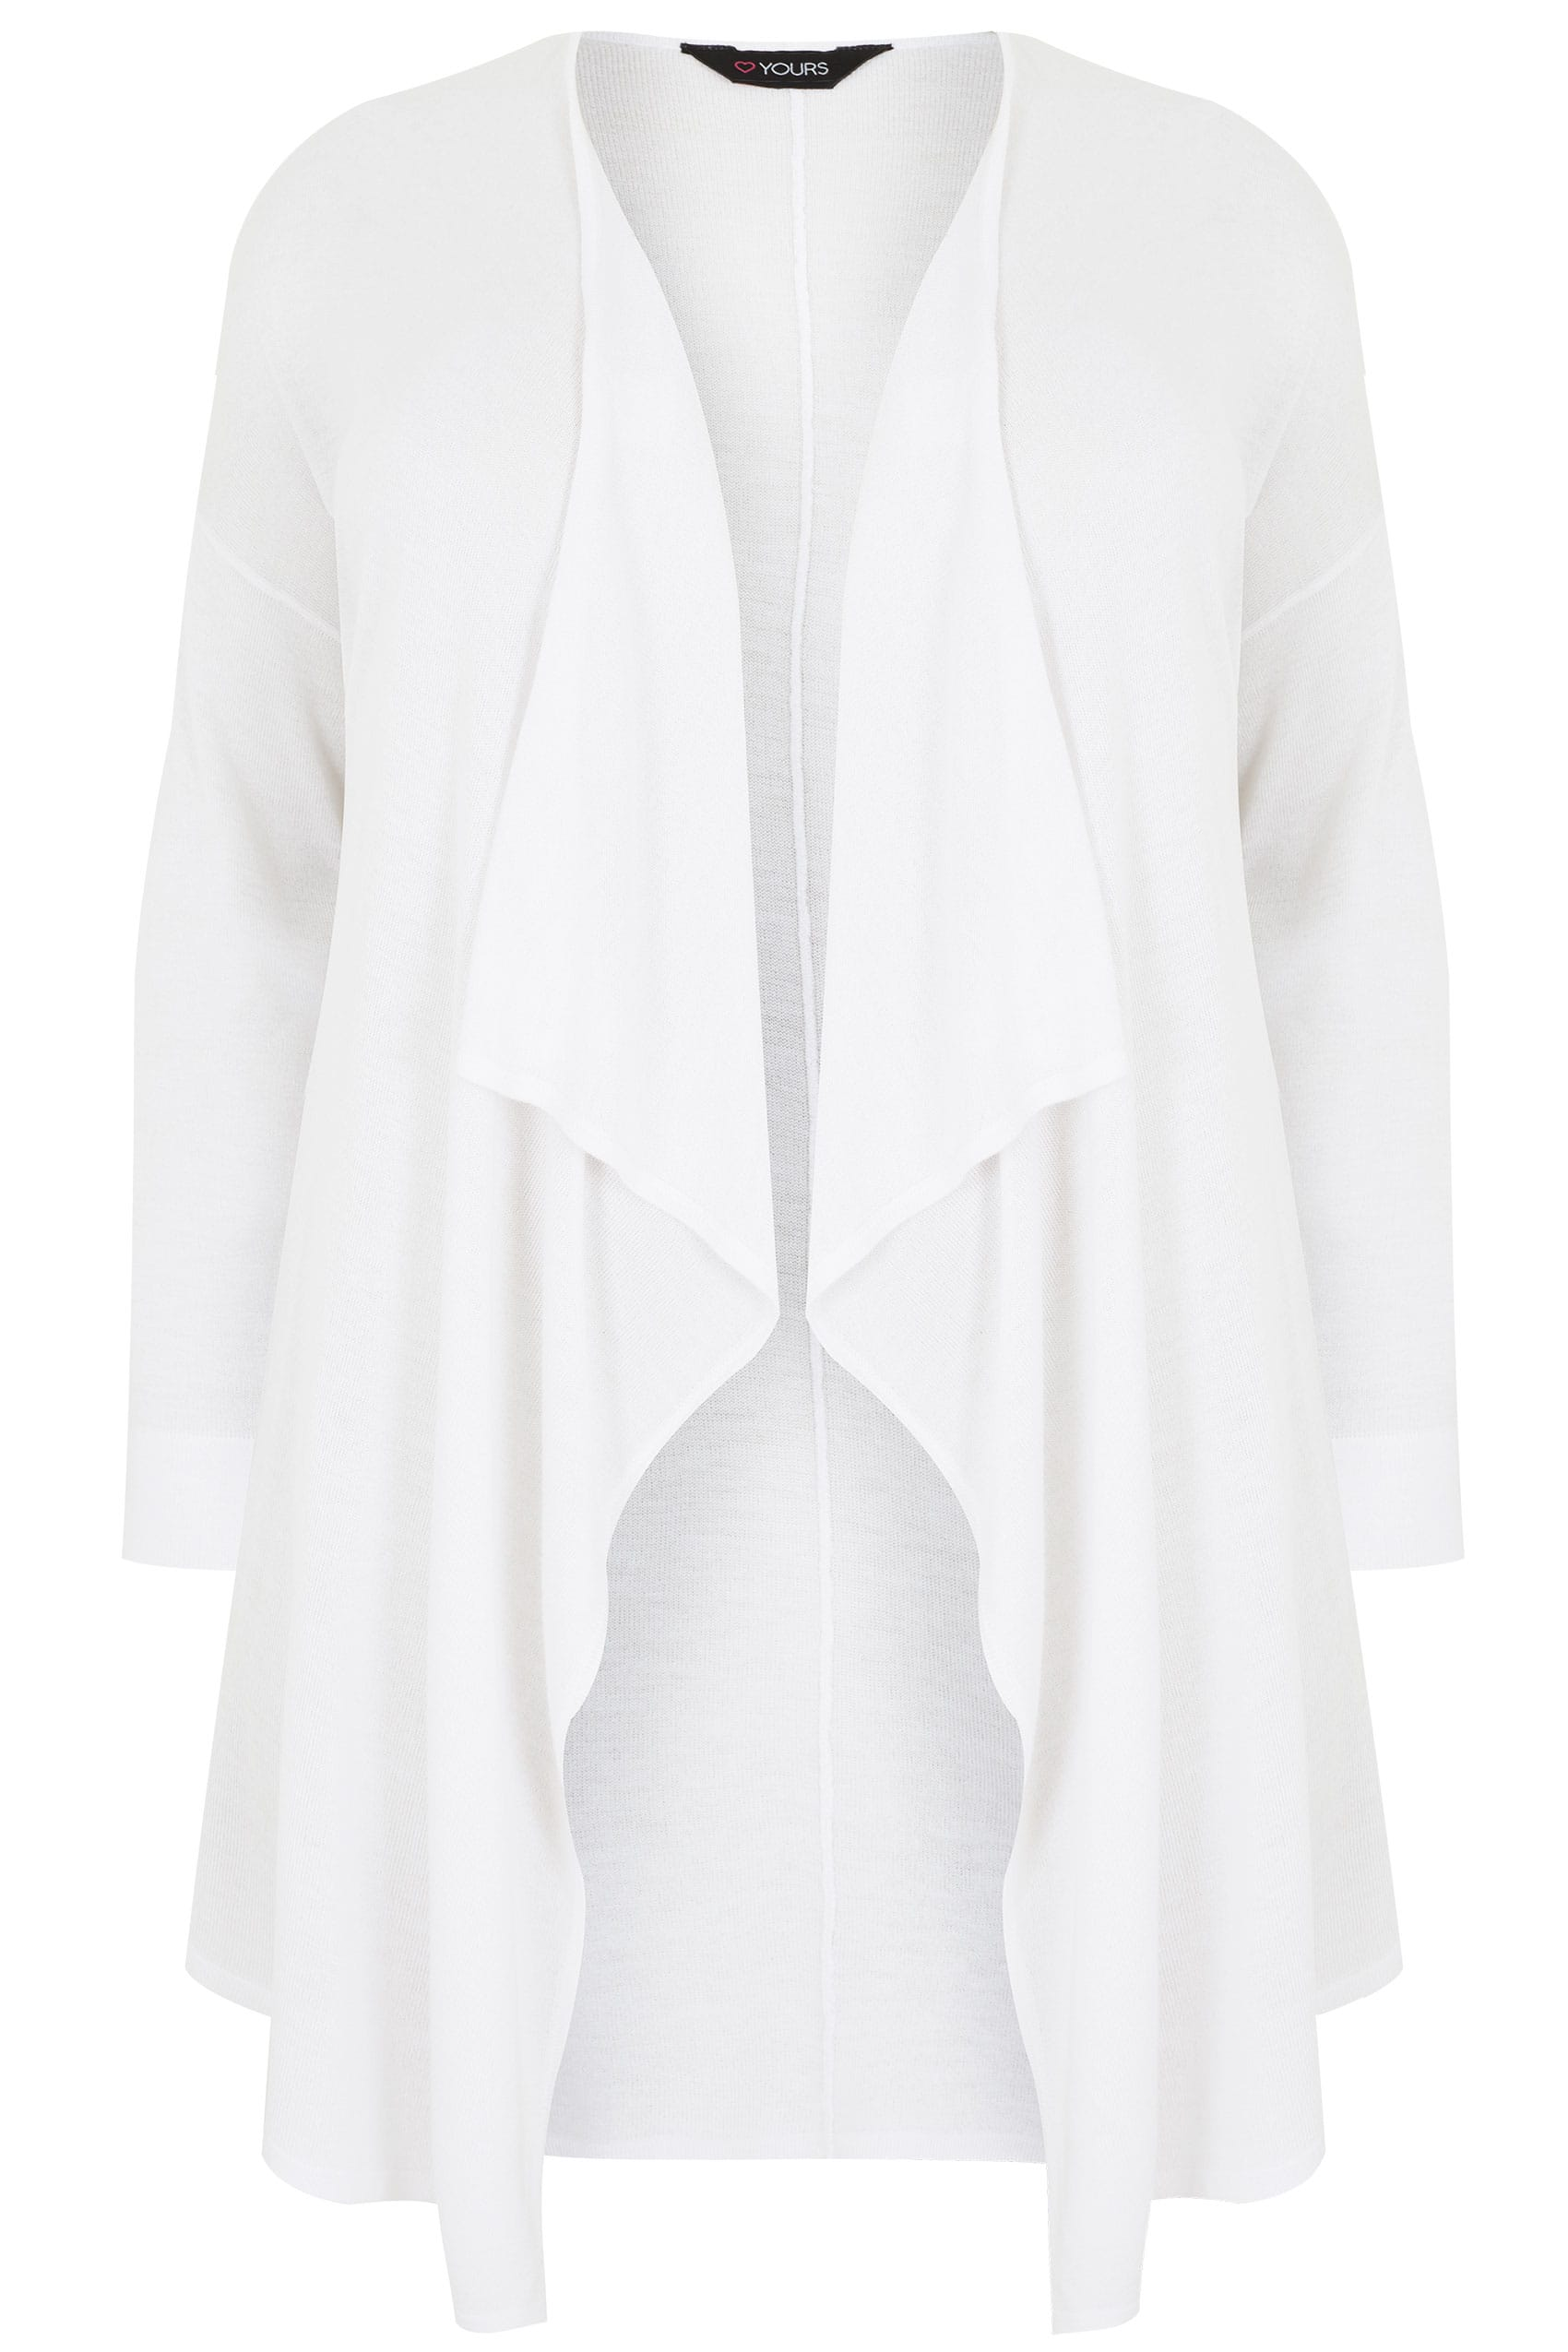 White Fine Knit Waterfall Cardigan, Plus size 16 to 36